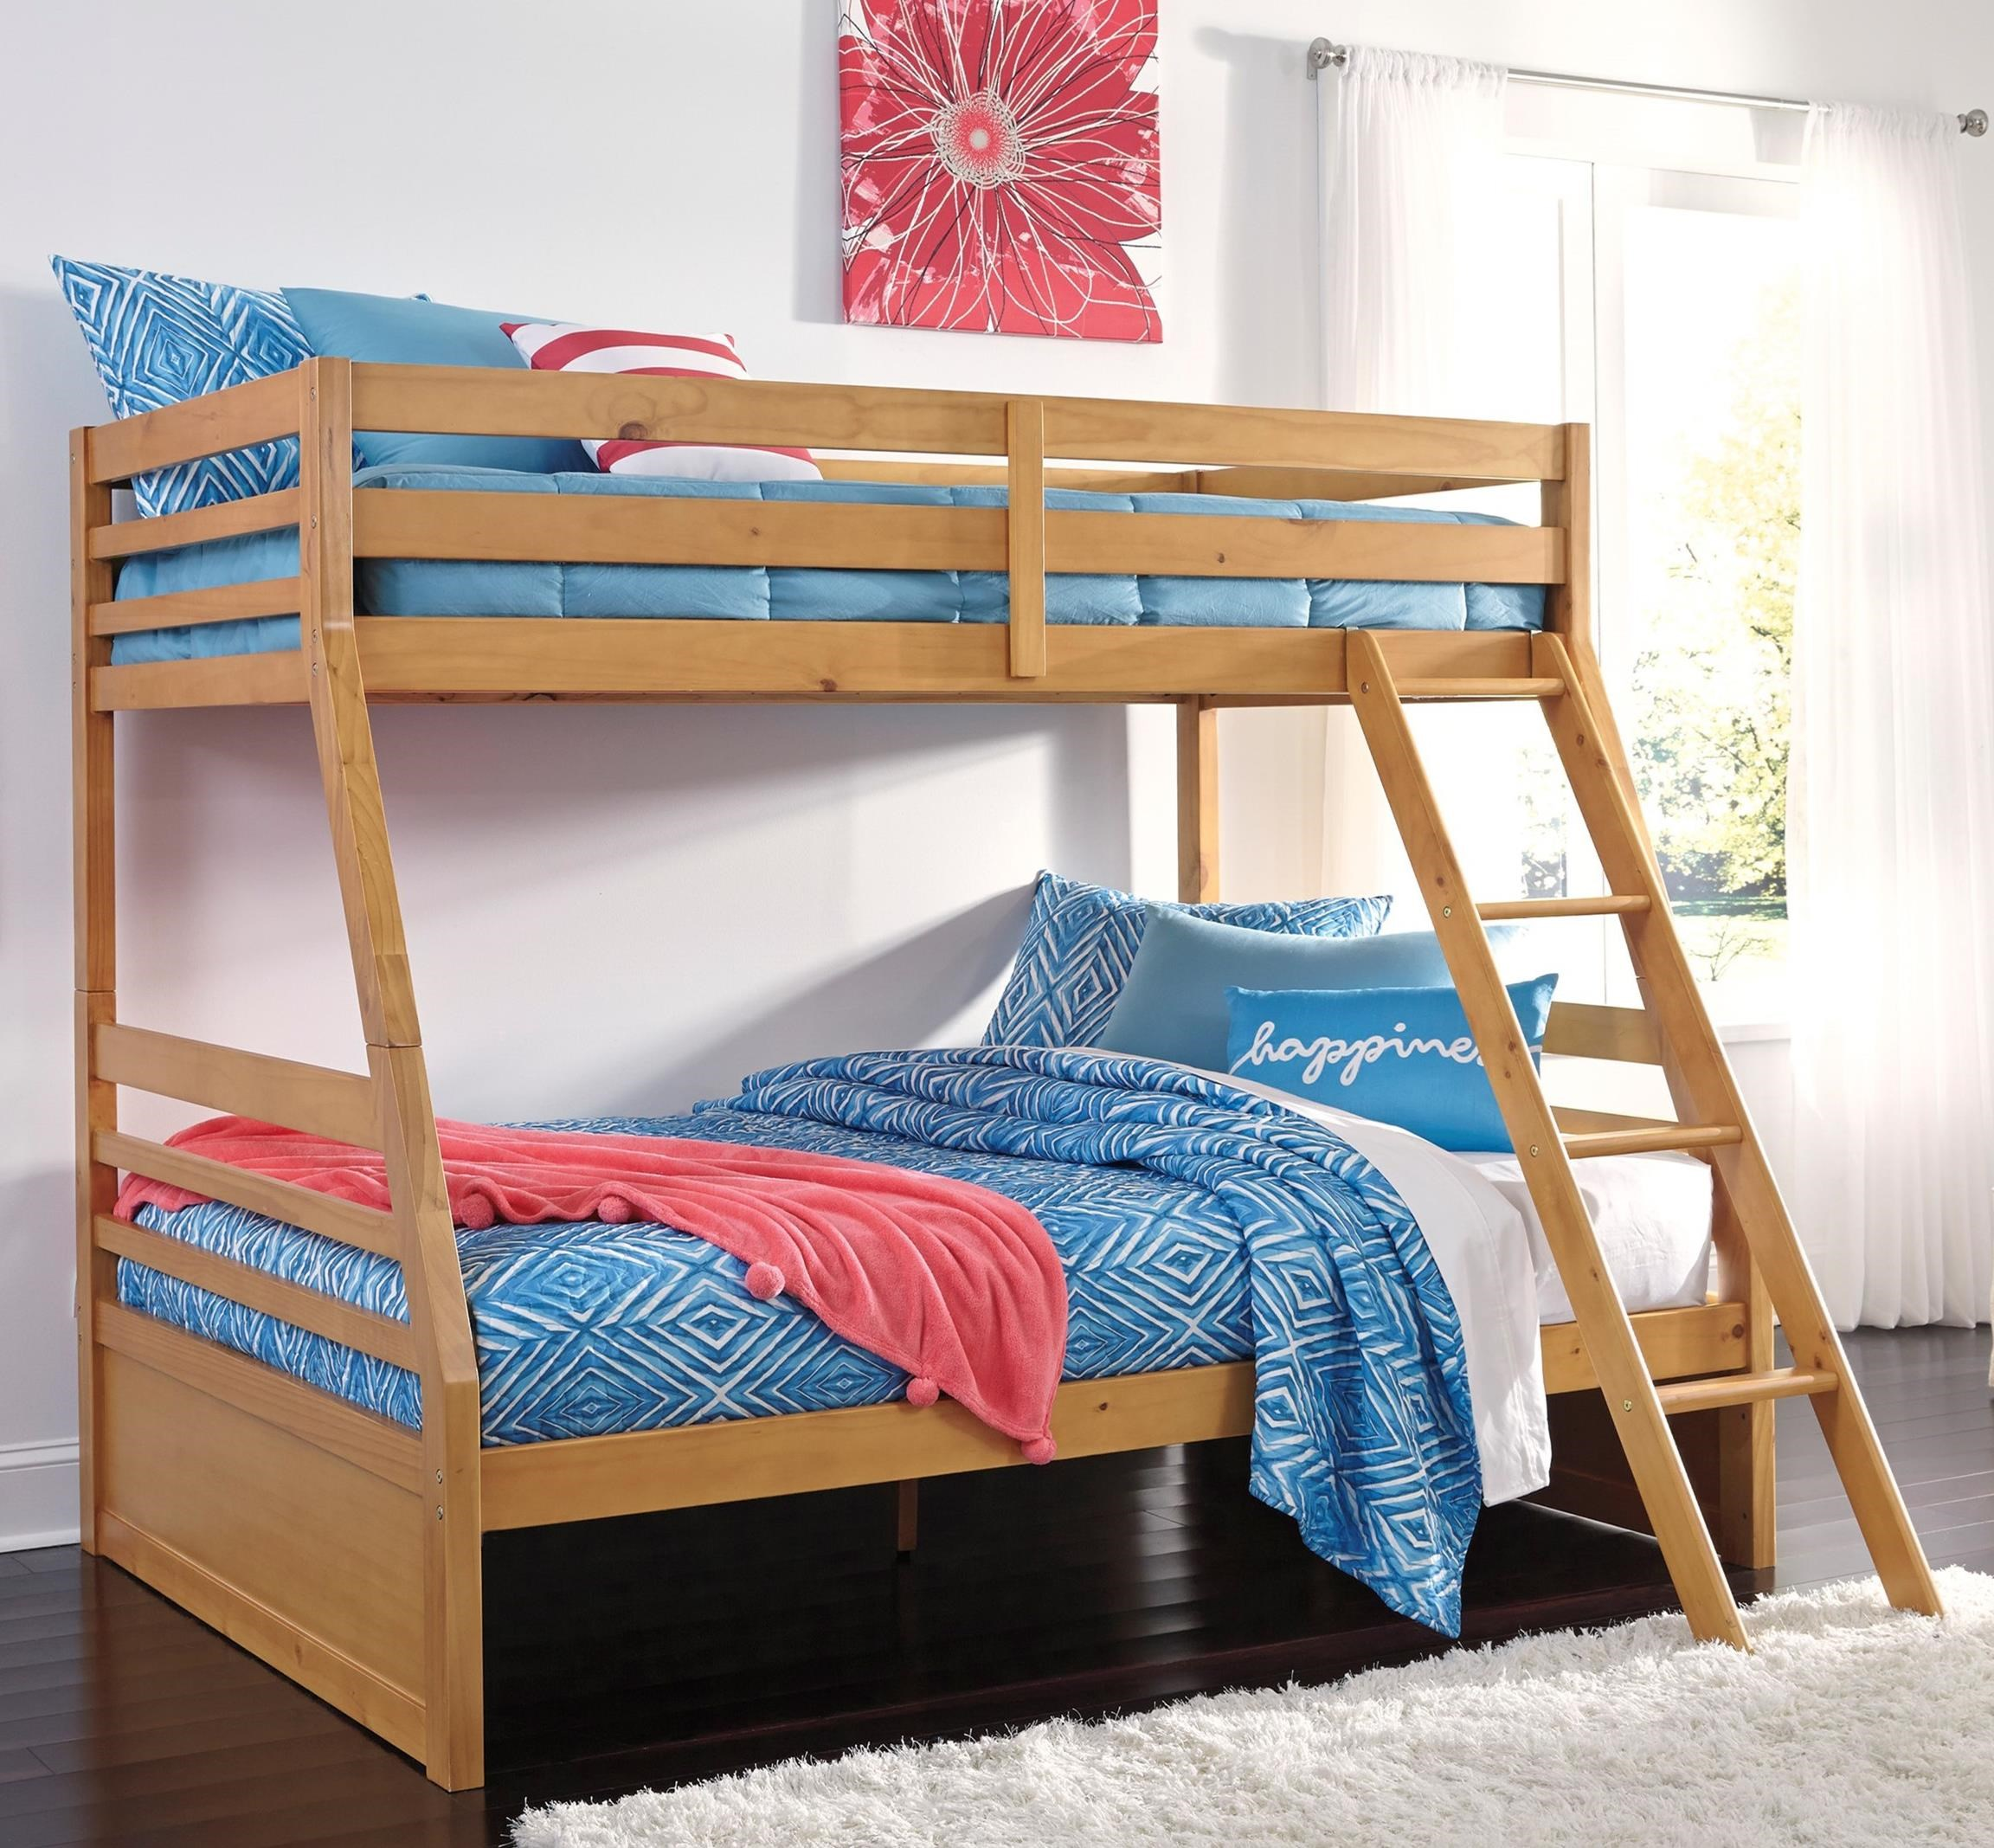 Signature Design By Ashley Hallytown Twin/Full Bunk Bed   Item Number: B324